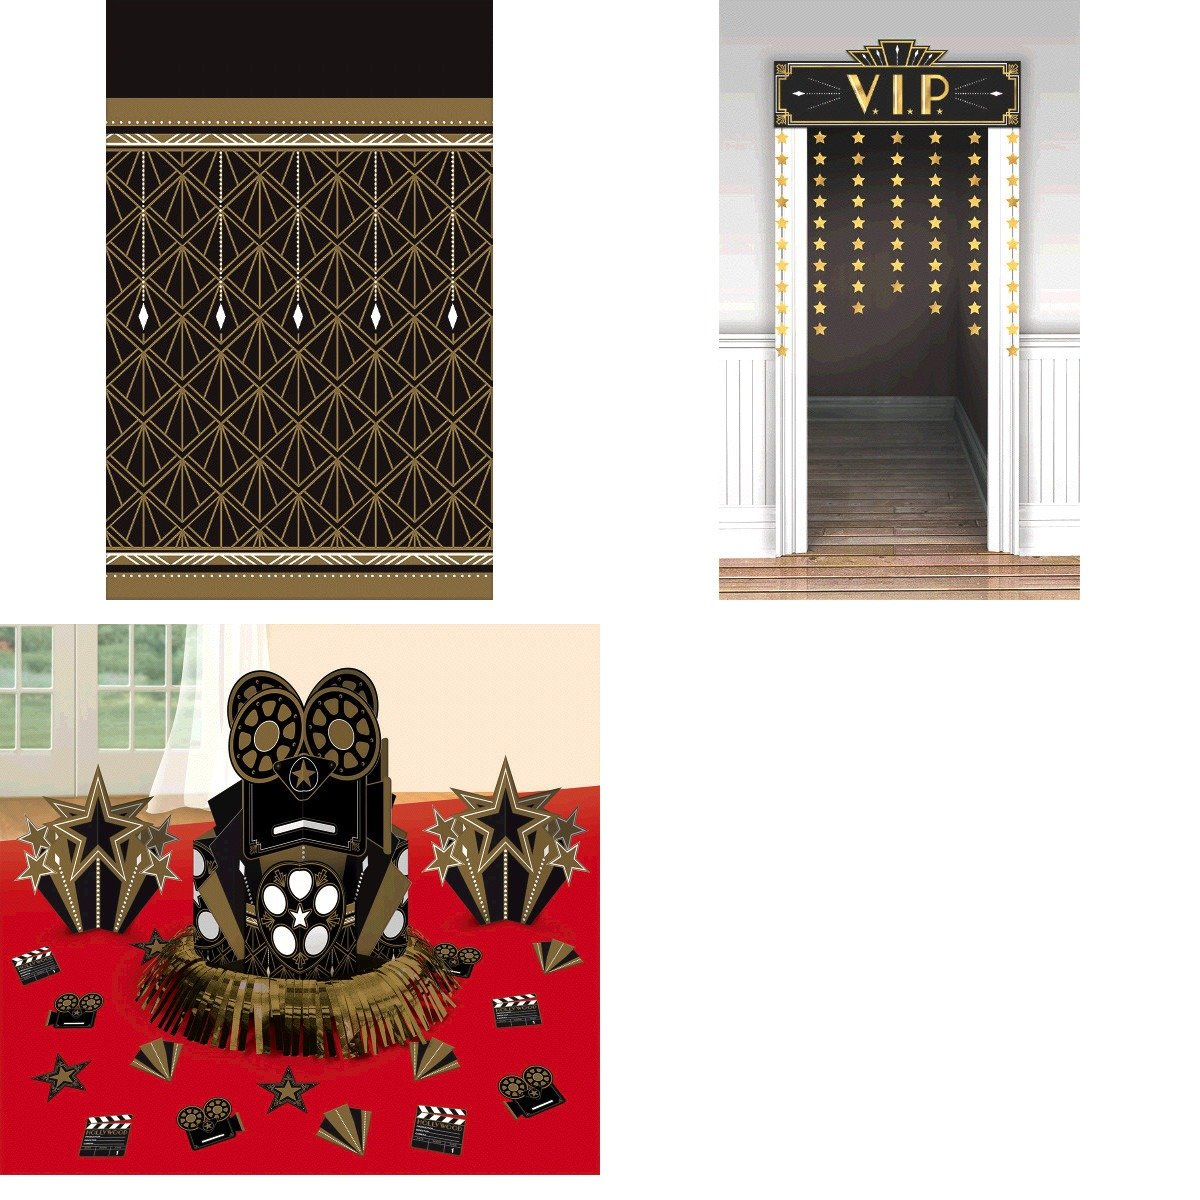 Amscan Glitz and Glam Movie Awards Night Hollywood Themed Party Supply Table and Door Décor Kit